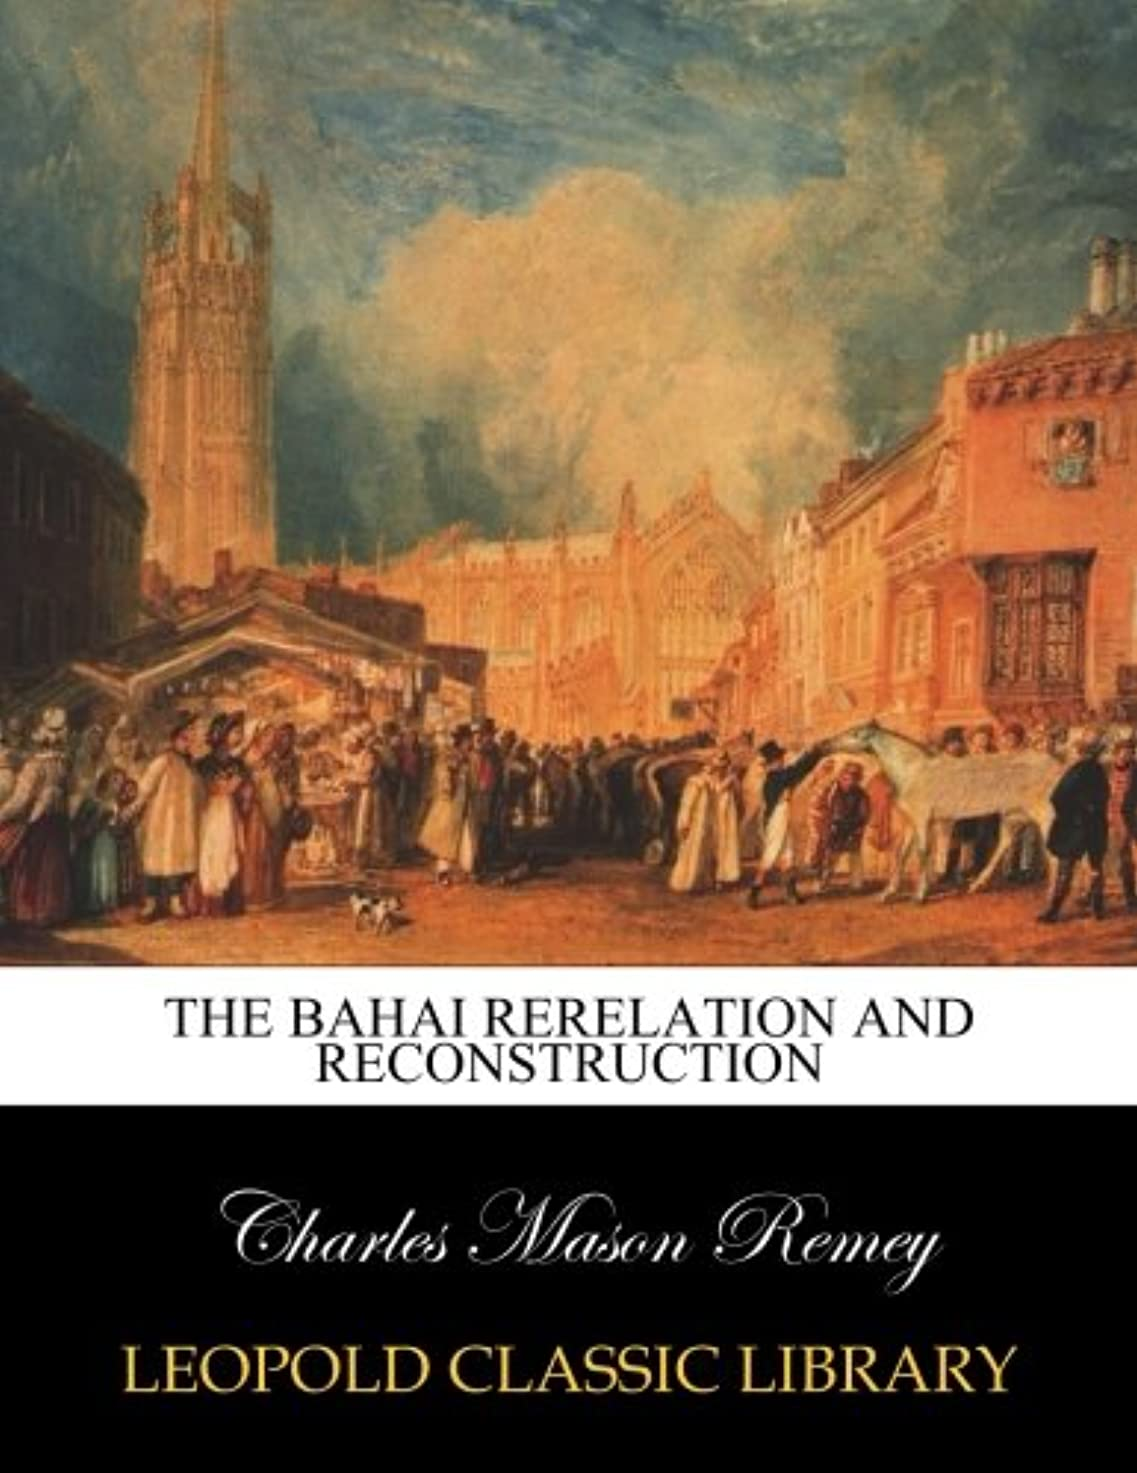 ヒープクラック用心深いThe Bahai rerelation and reconstruction